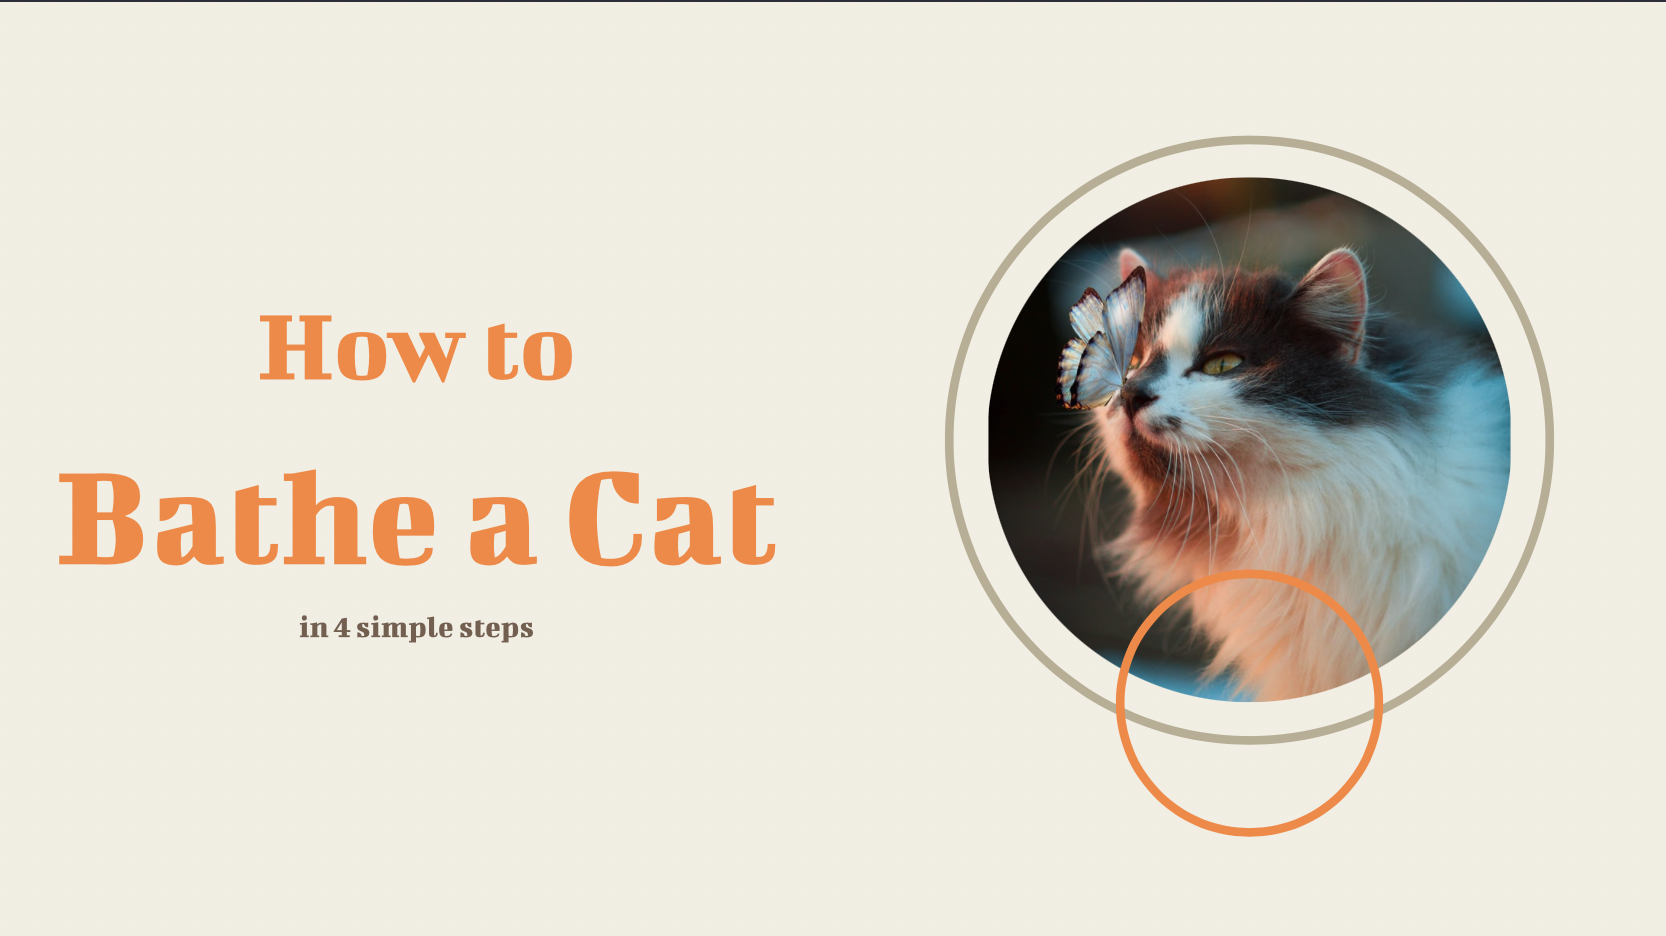 To help your audience fend off the need to nap at their desk, we have created a beautiful presentation with step-by-step how to bathe a cat instructions. Now you can wrap up in design ingenuity even faster than before. Our decktopus will leave your colleagues yearning for more with new creative presentations each day!